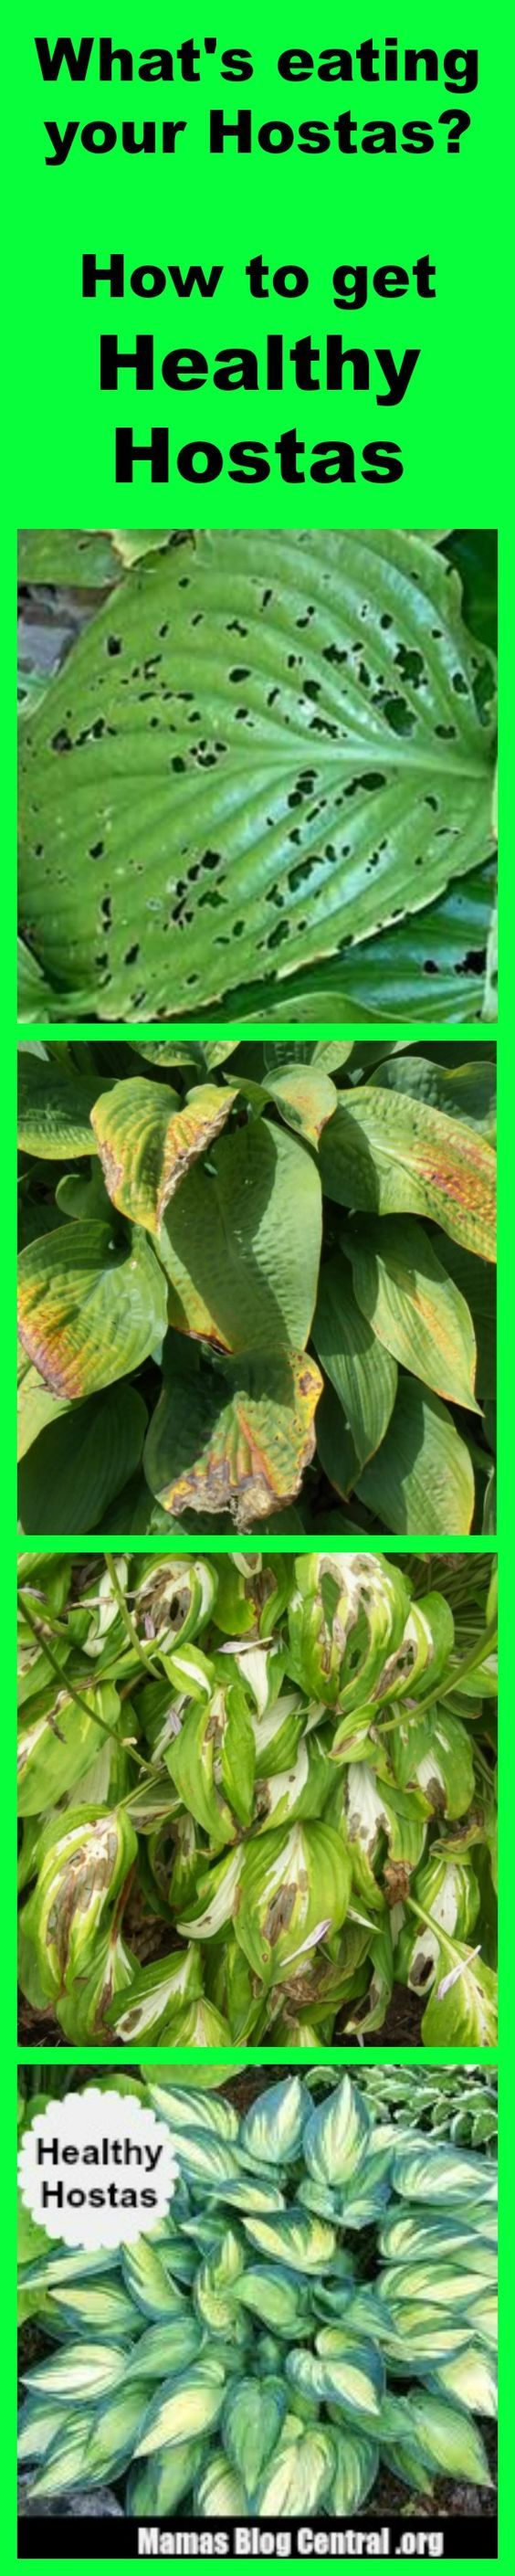 The Best homemade solution for Hostas Care that will stop bugs and slugs from eating your Hostas. http://www.mamasblogcentral.org/hostas-care/